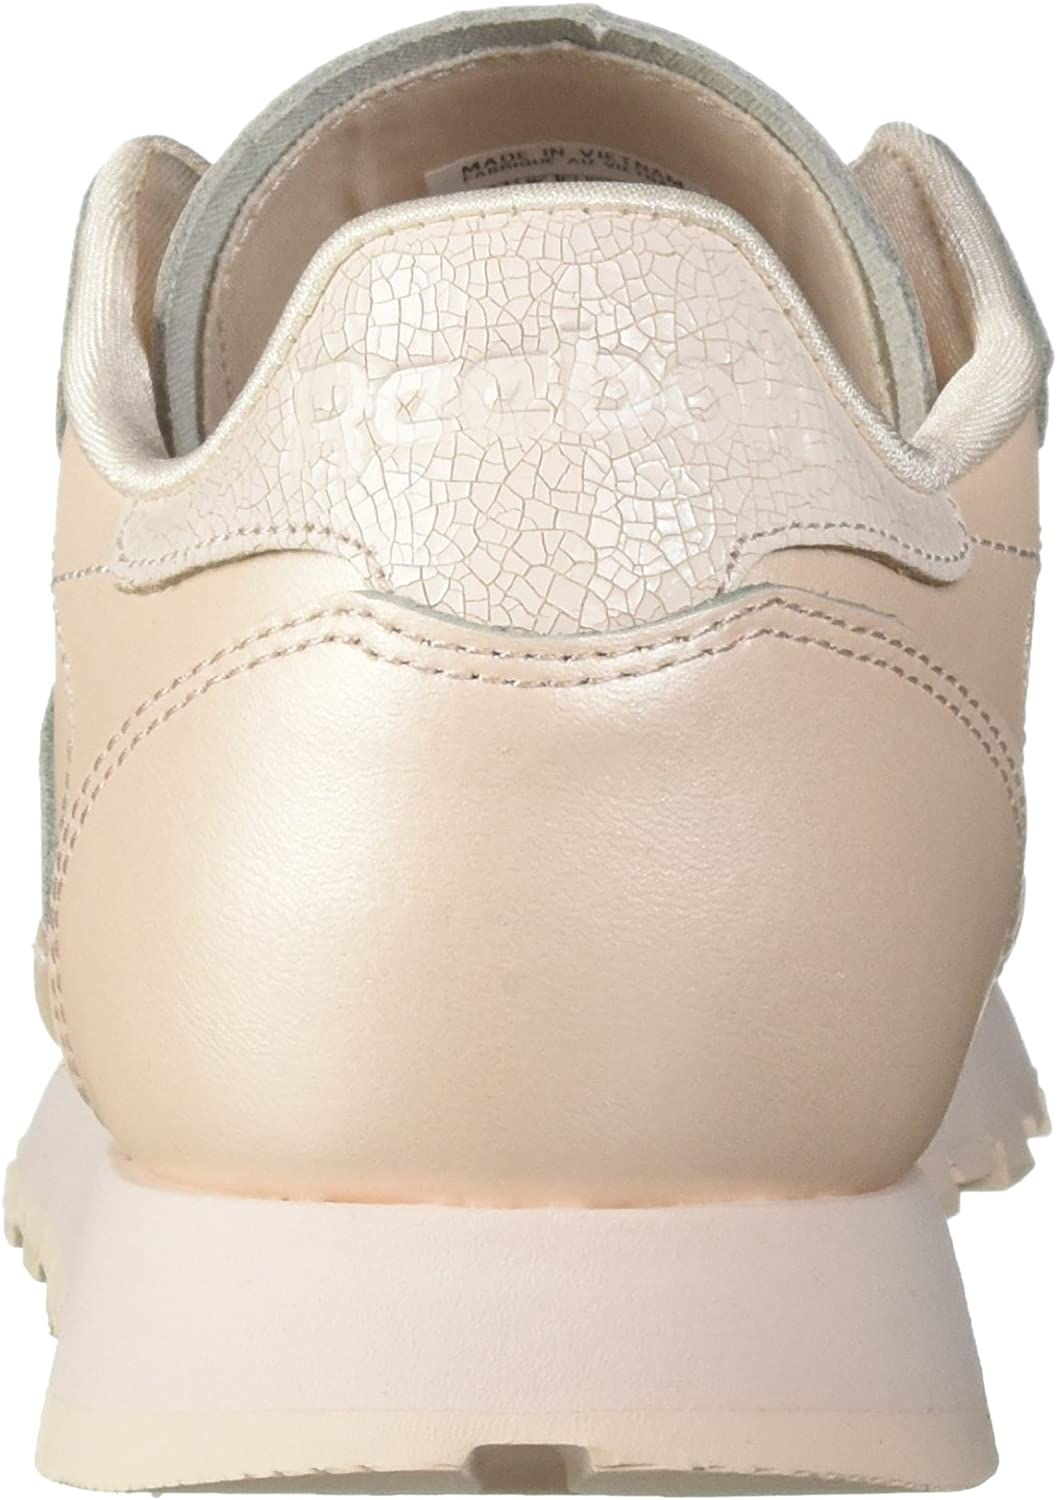 Reebok Classic Nylon, Sneakers Basses Homme Mid Pale Pink